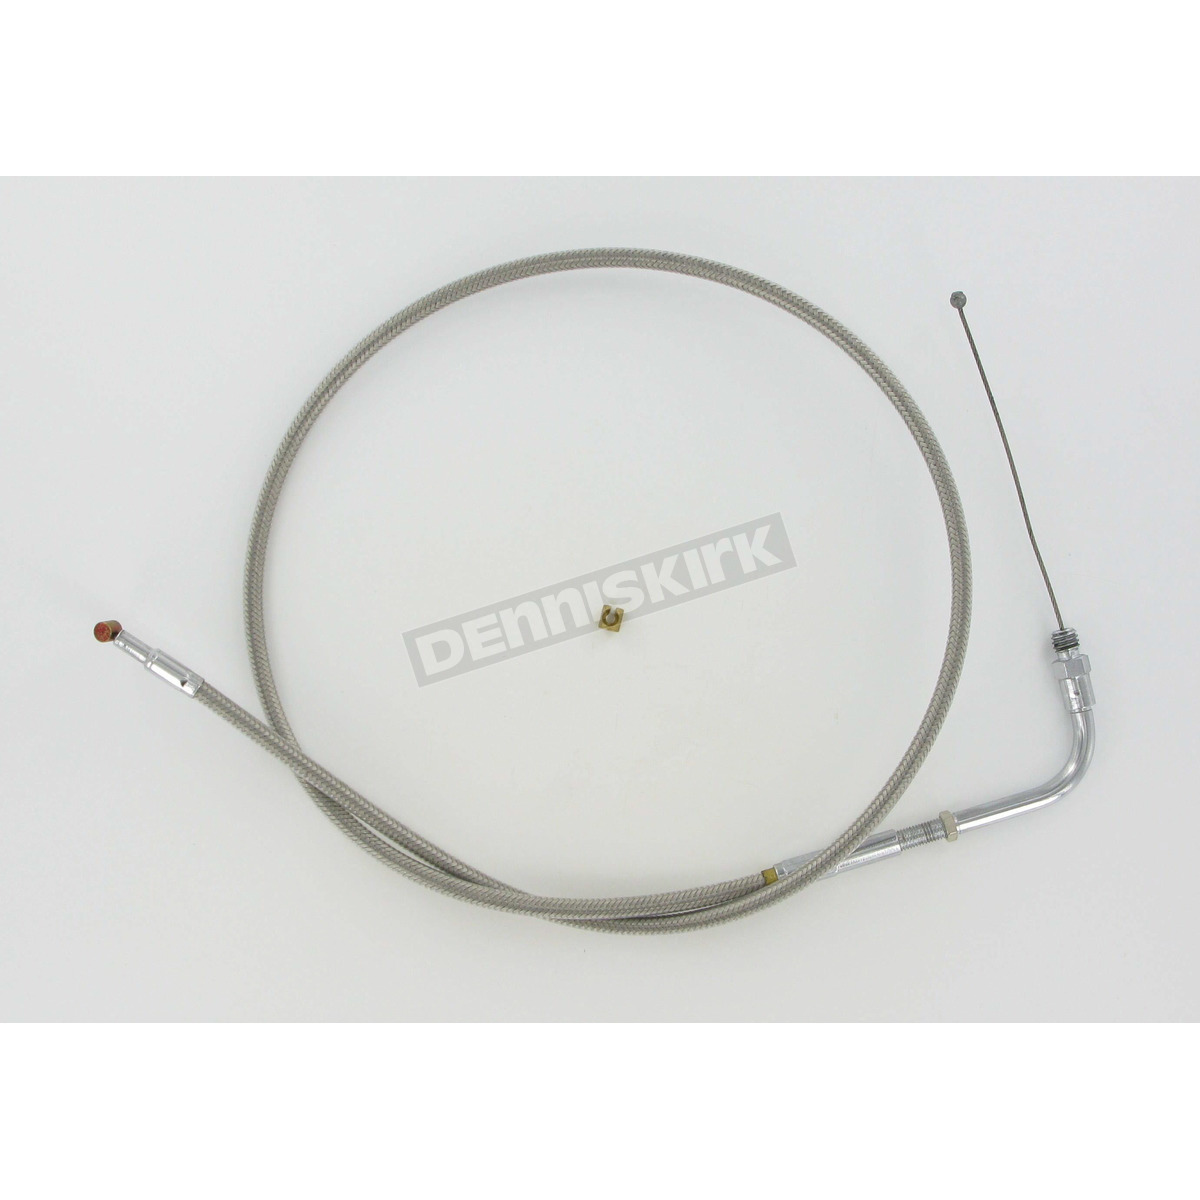 Stainless Steel 32 in  Throttle Cable - 102-30-30014